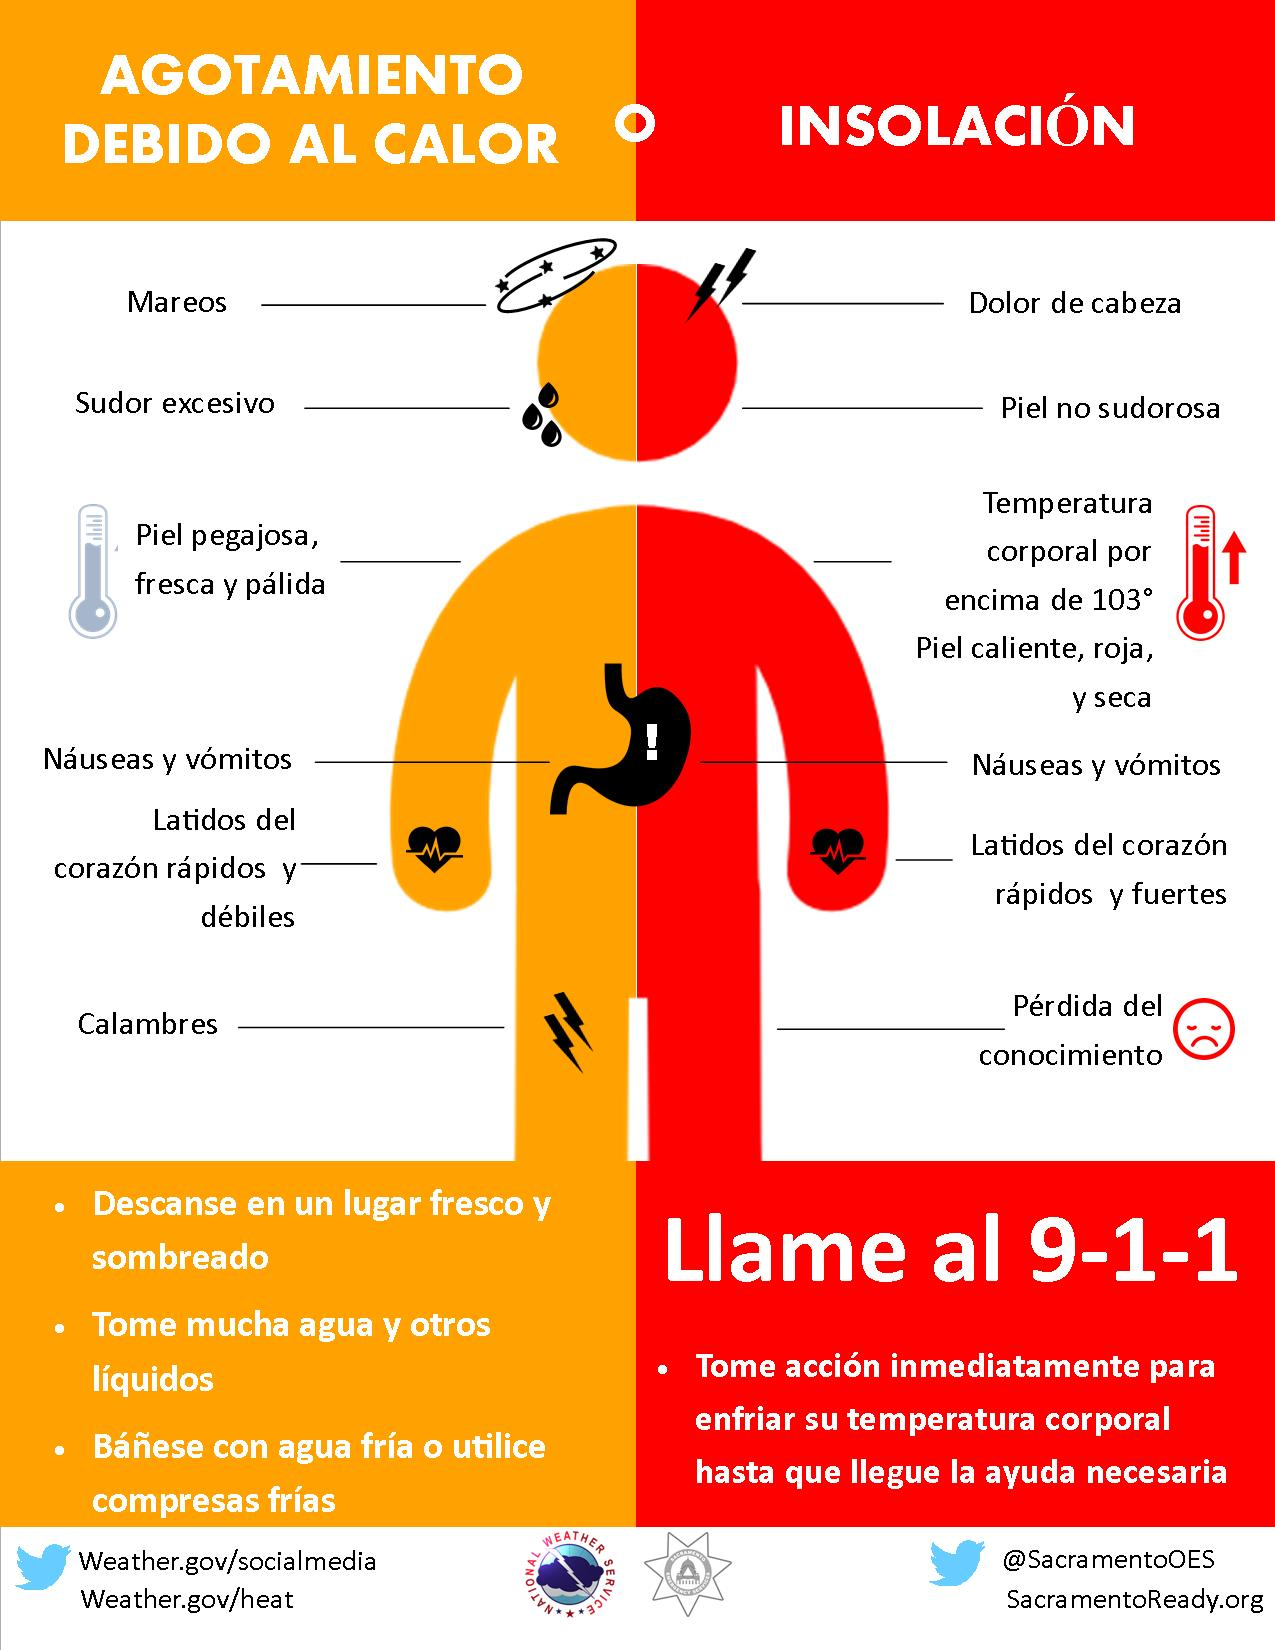 https://www.weather.gov/images/safety/Heat_Illness_Spanish.jpg